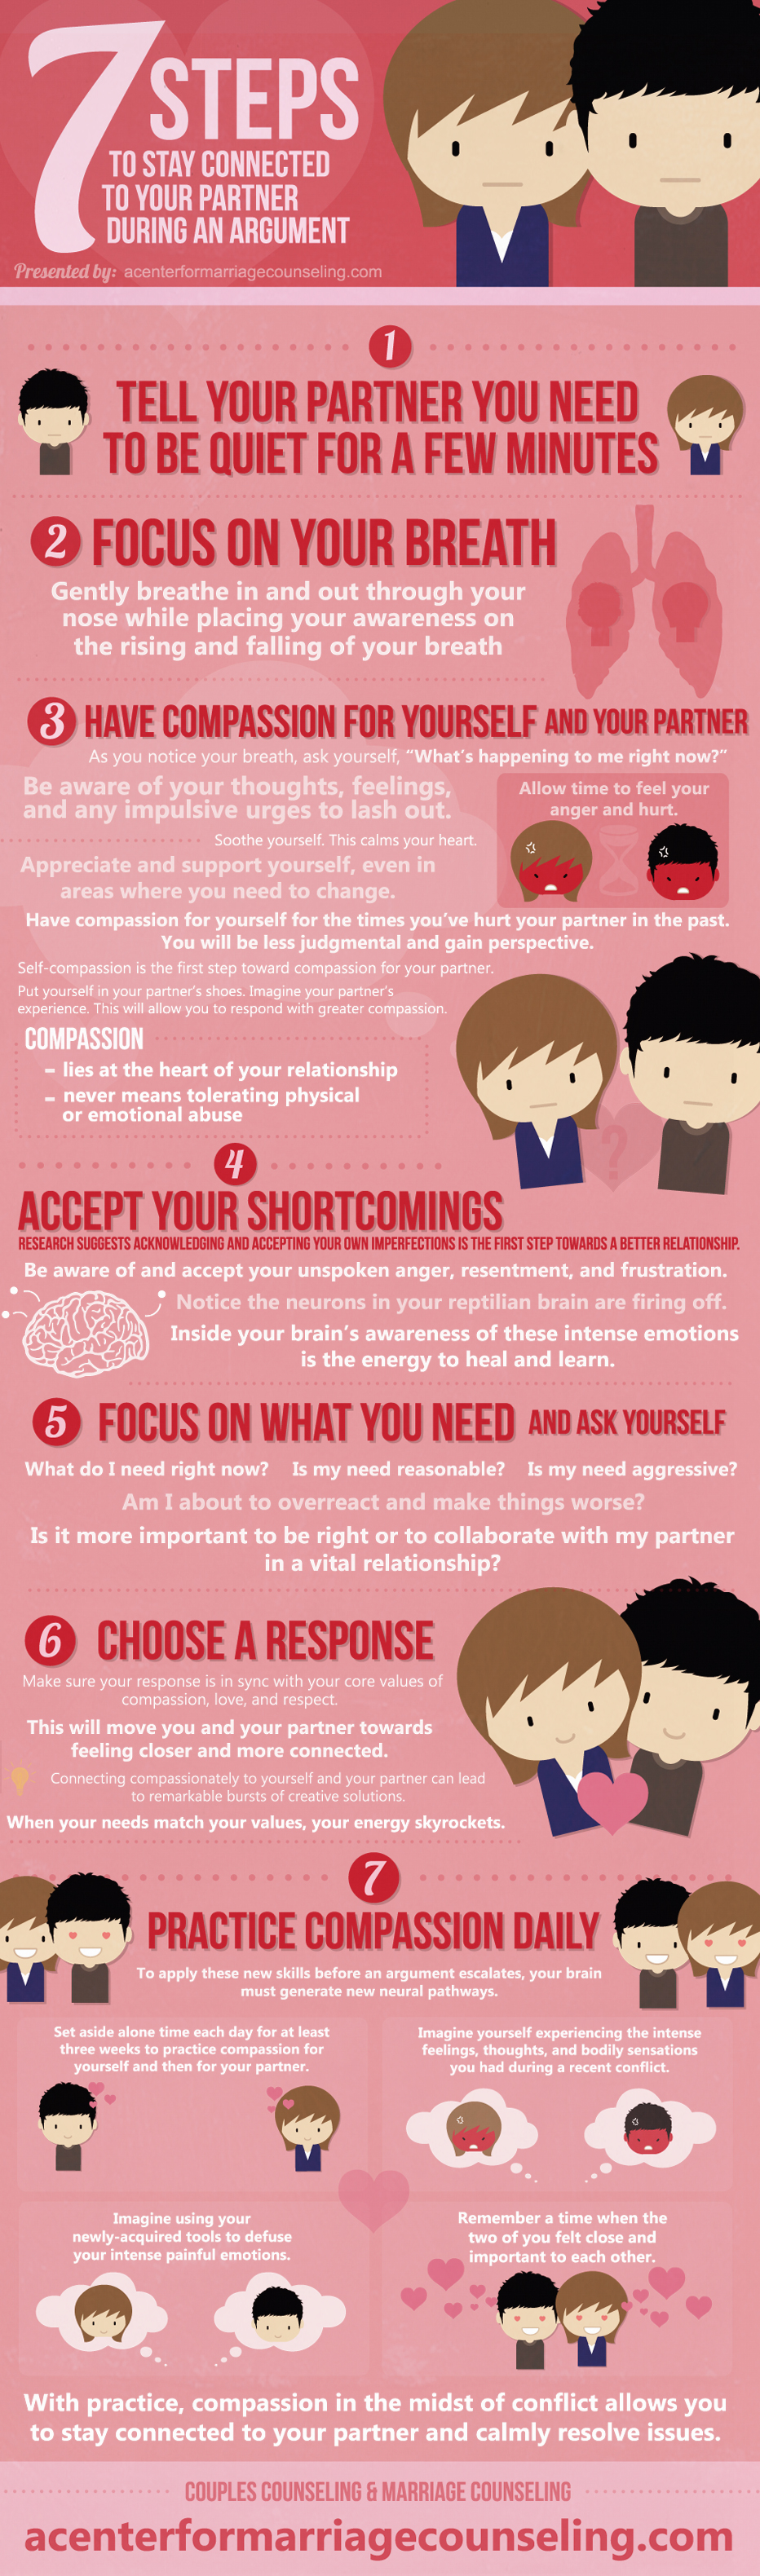 7 Steps To Stay Connected To Your Partner During An Argument